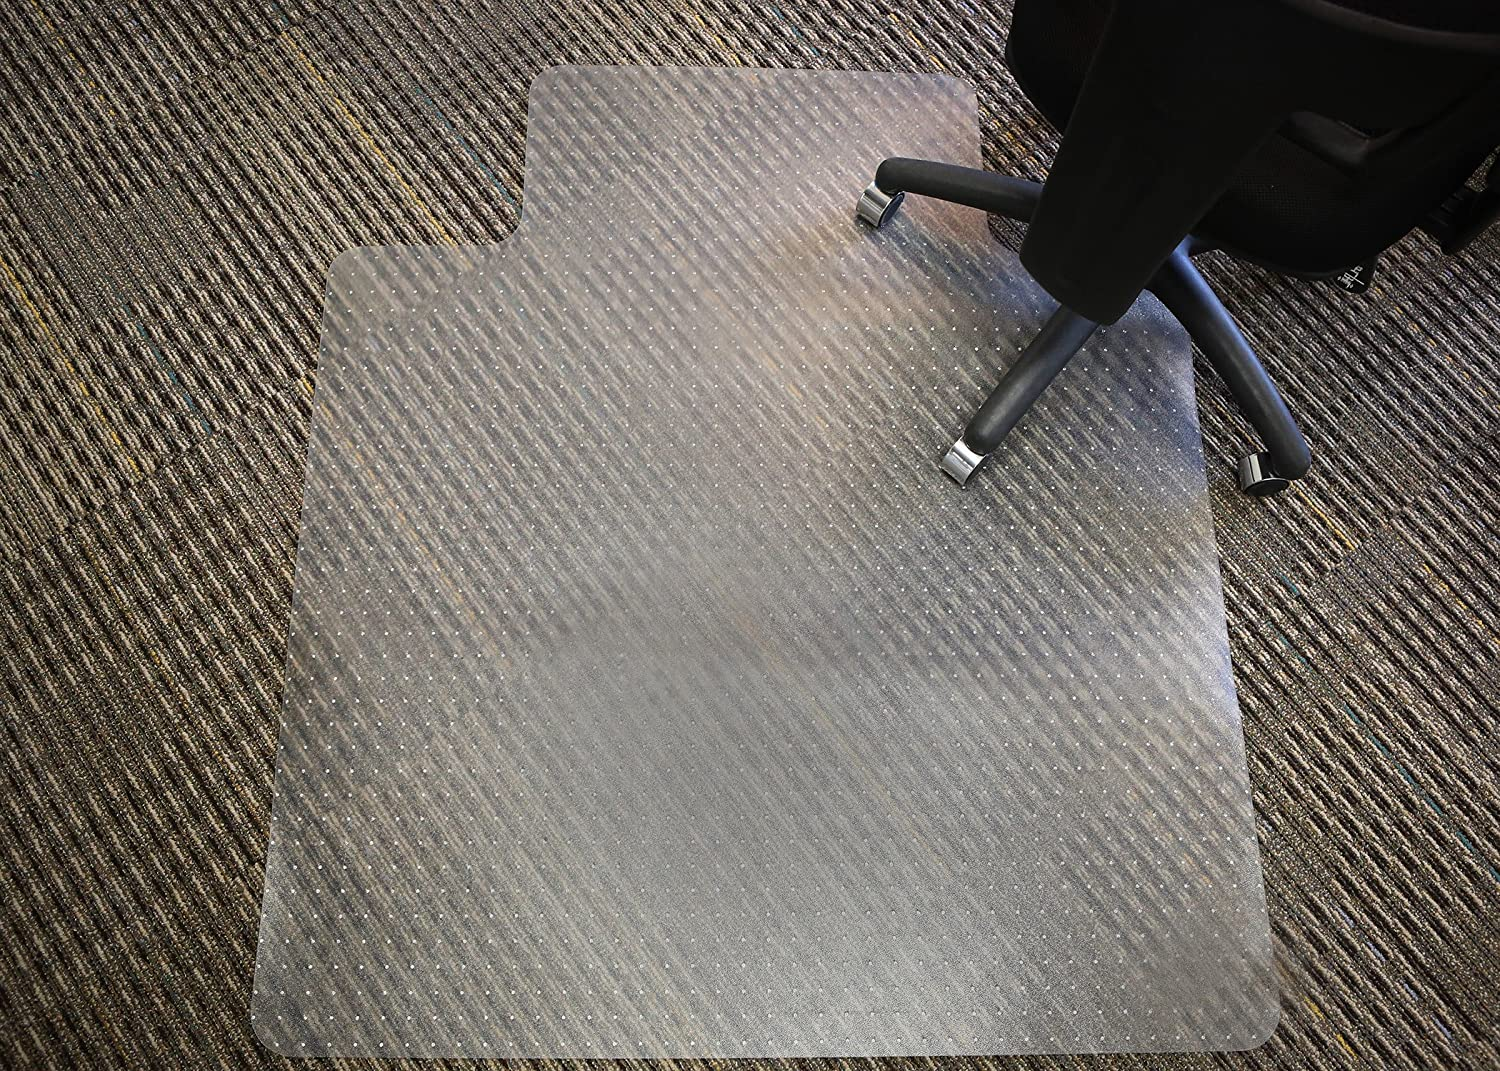 Mammoth Office Products PVC Plastic Chair Mat for Standard Pile 3 8-Inch in or Less Carpeting, 48 x 60 Inches Rectangular with Lip for Under-Desk V4660LSP